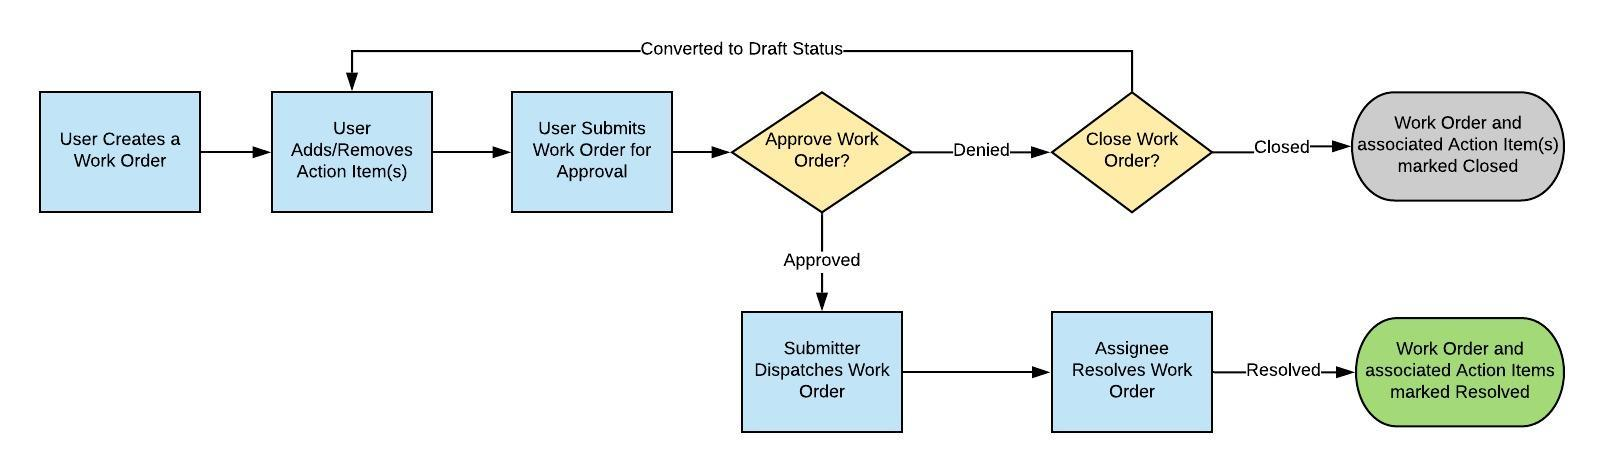 The Lifecycle of a Work Order